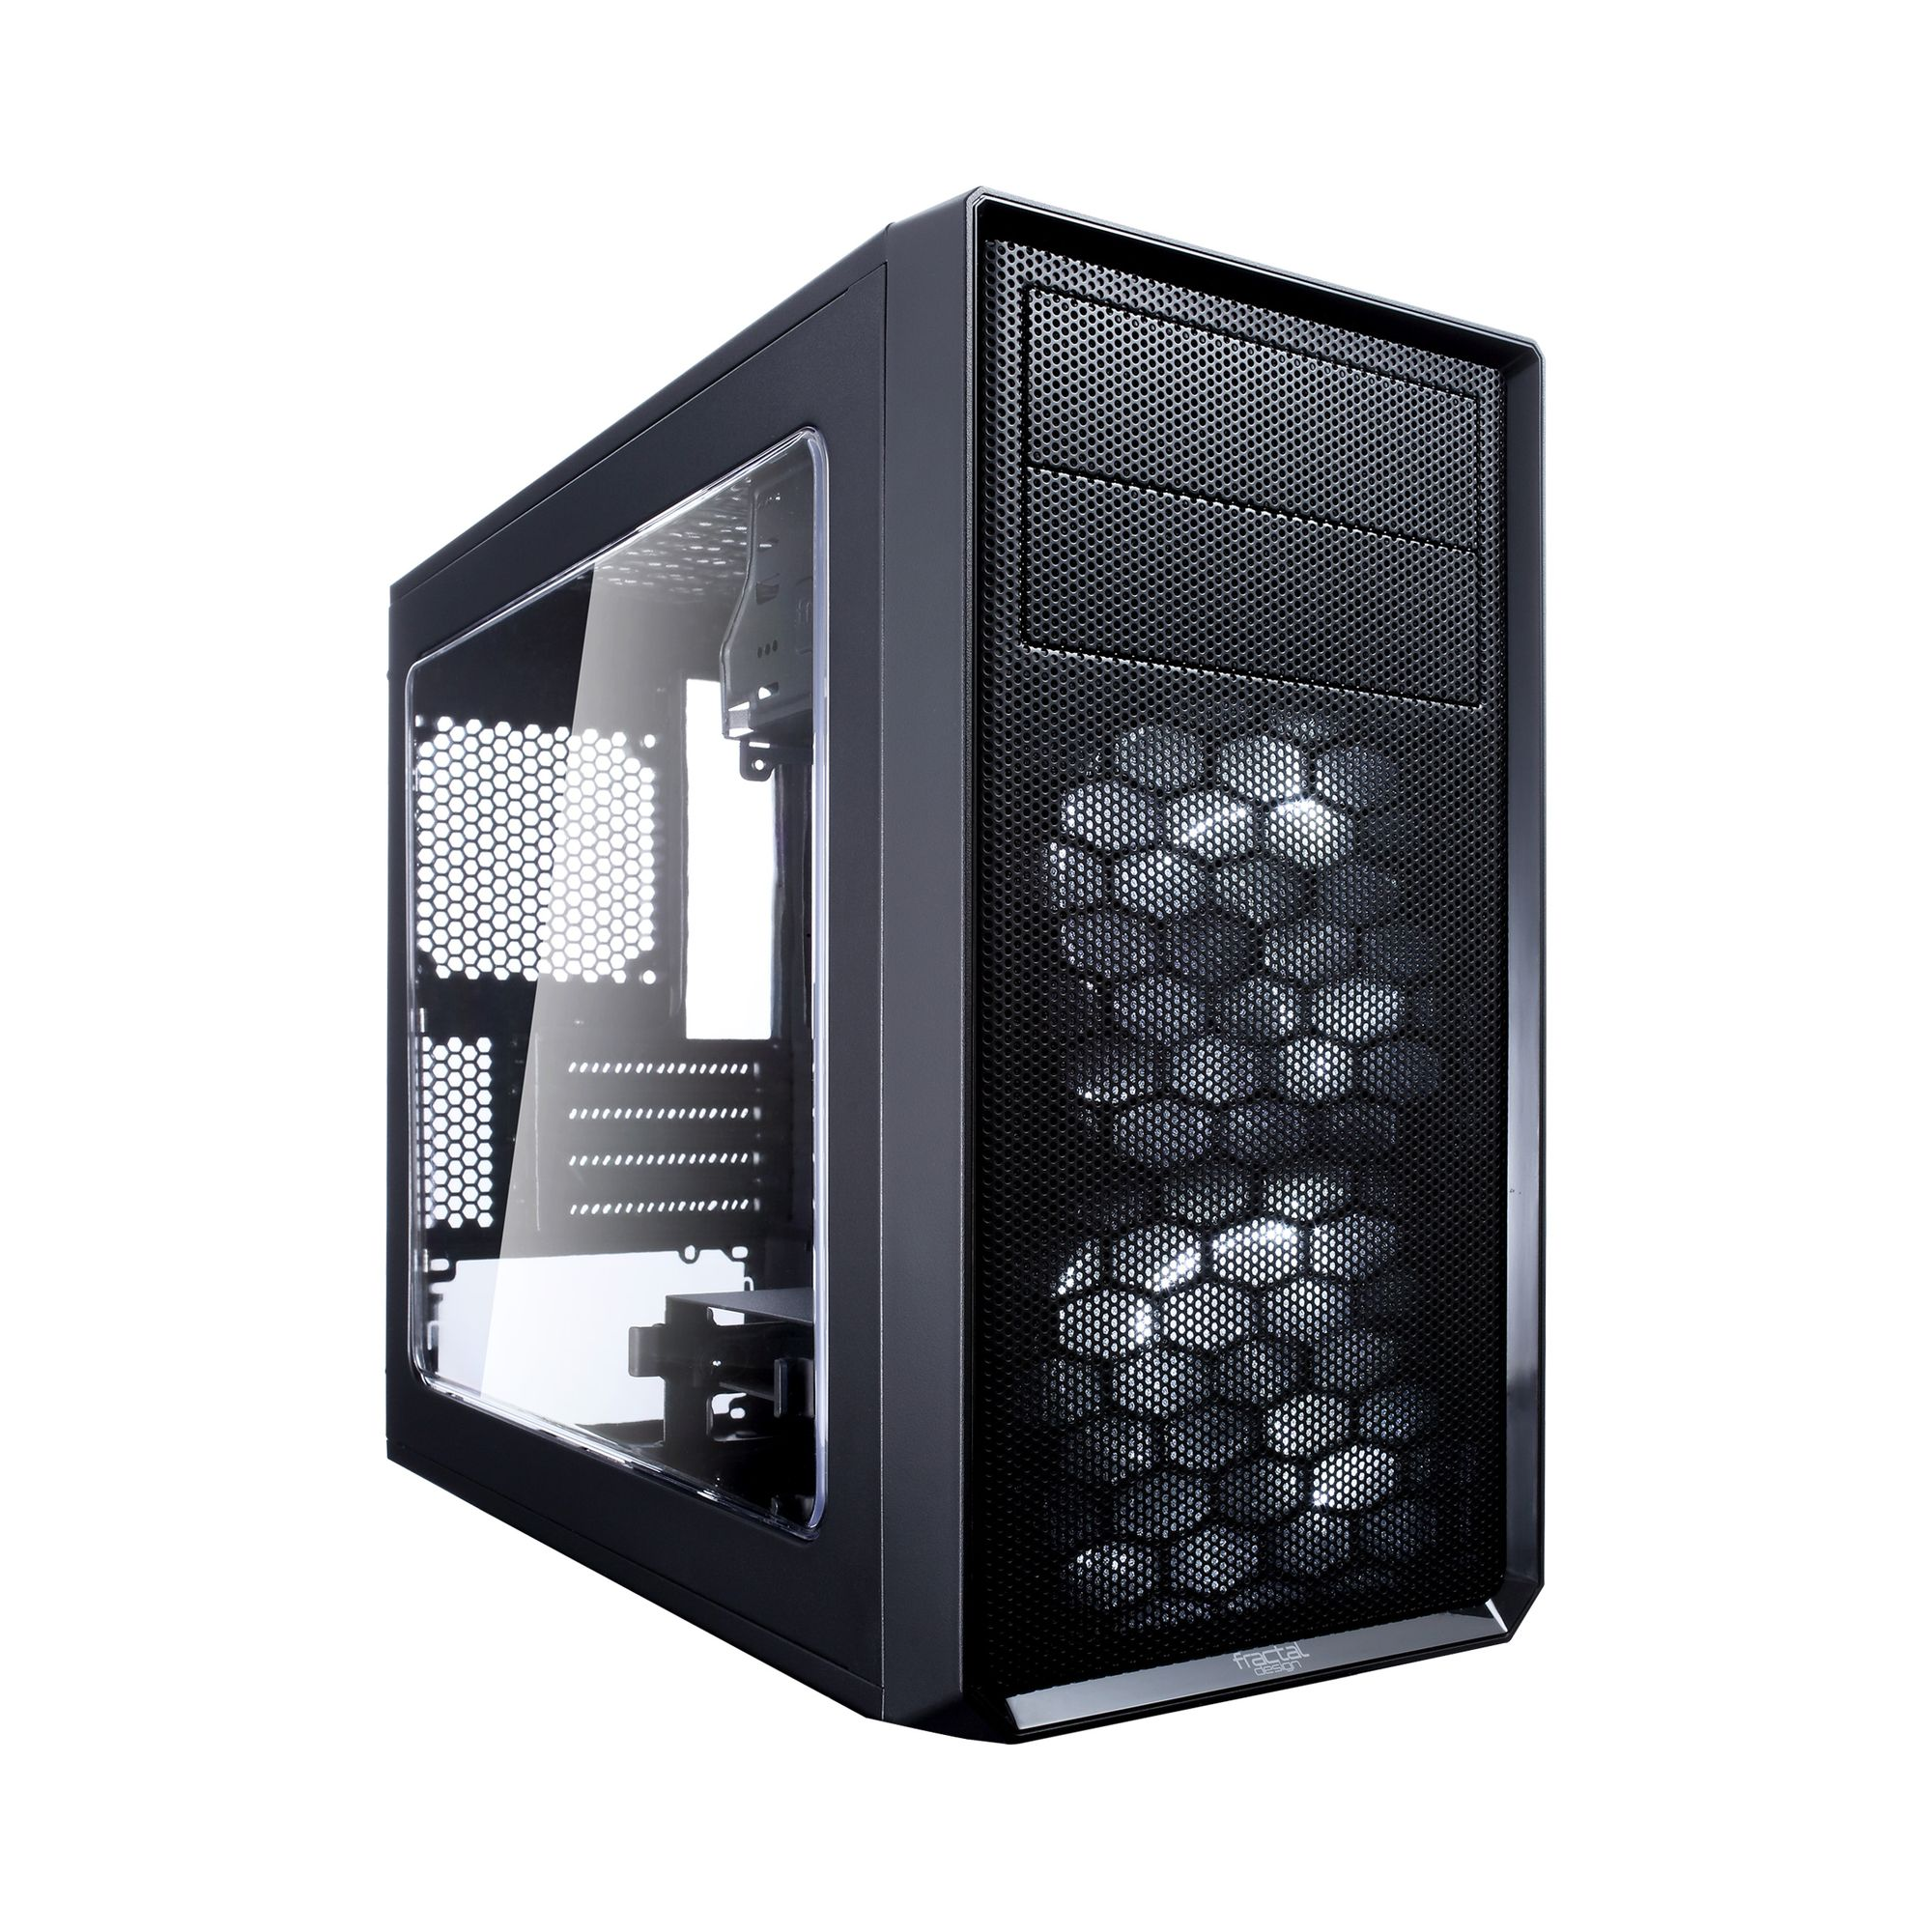 Корпус Fractal Design Focus G Mini (FD-CA-FOCUS-MINI-BK-W) Black black tiered design round neck half sleeves bodycon mini dress